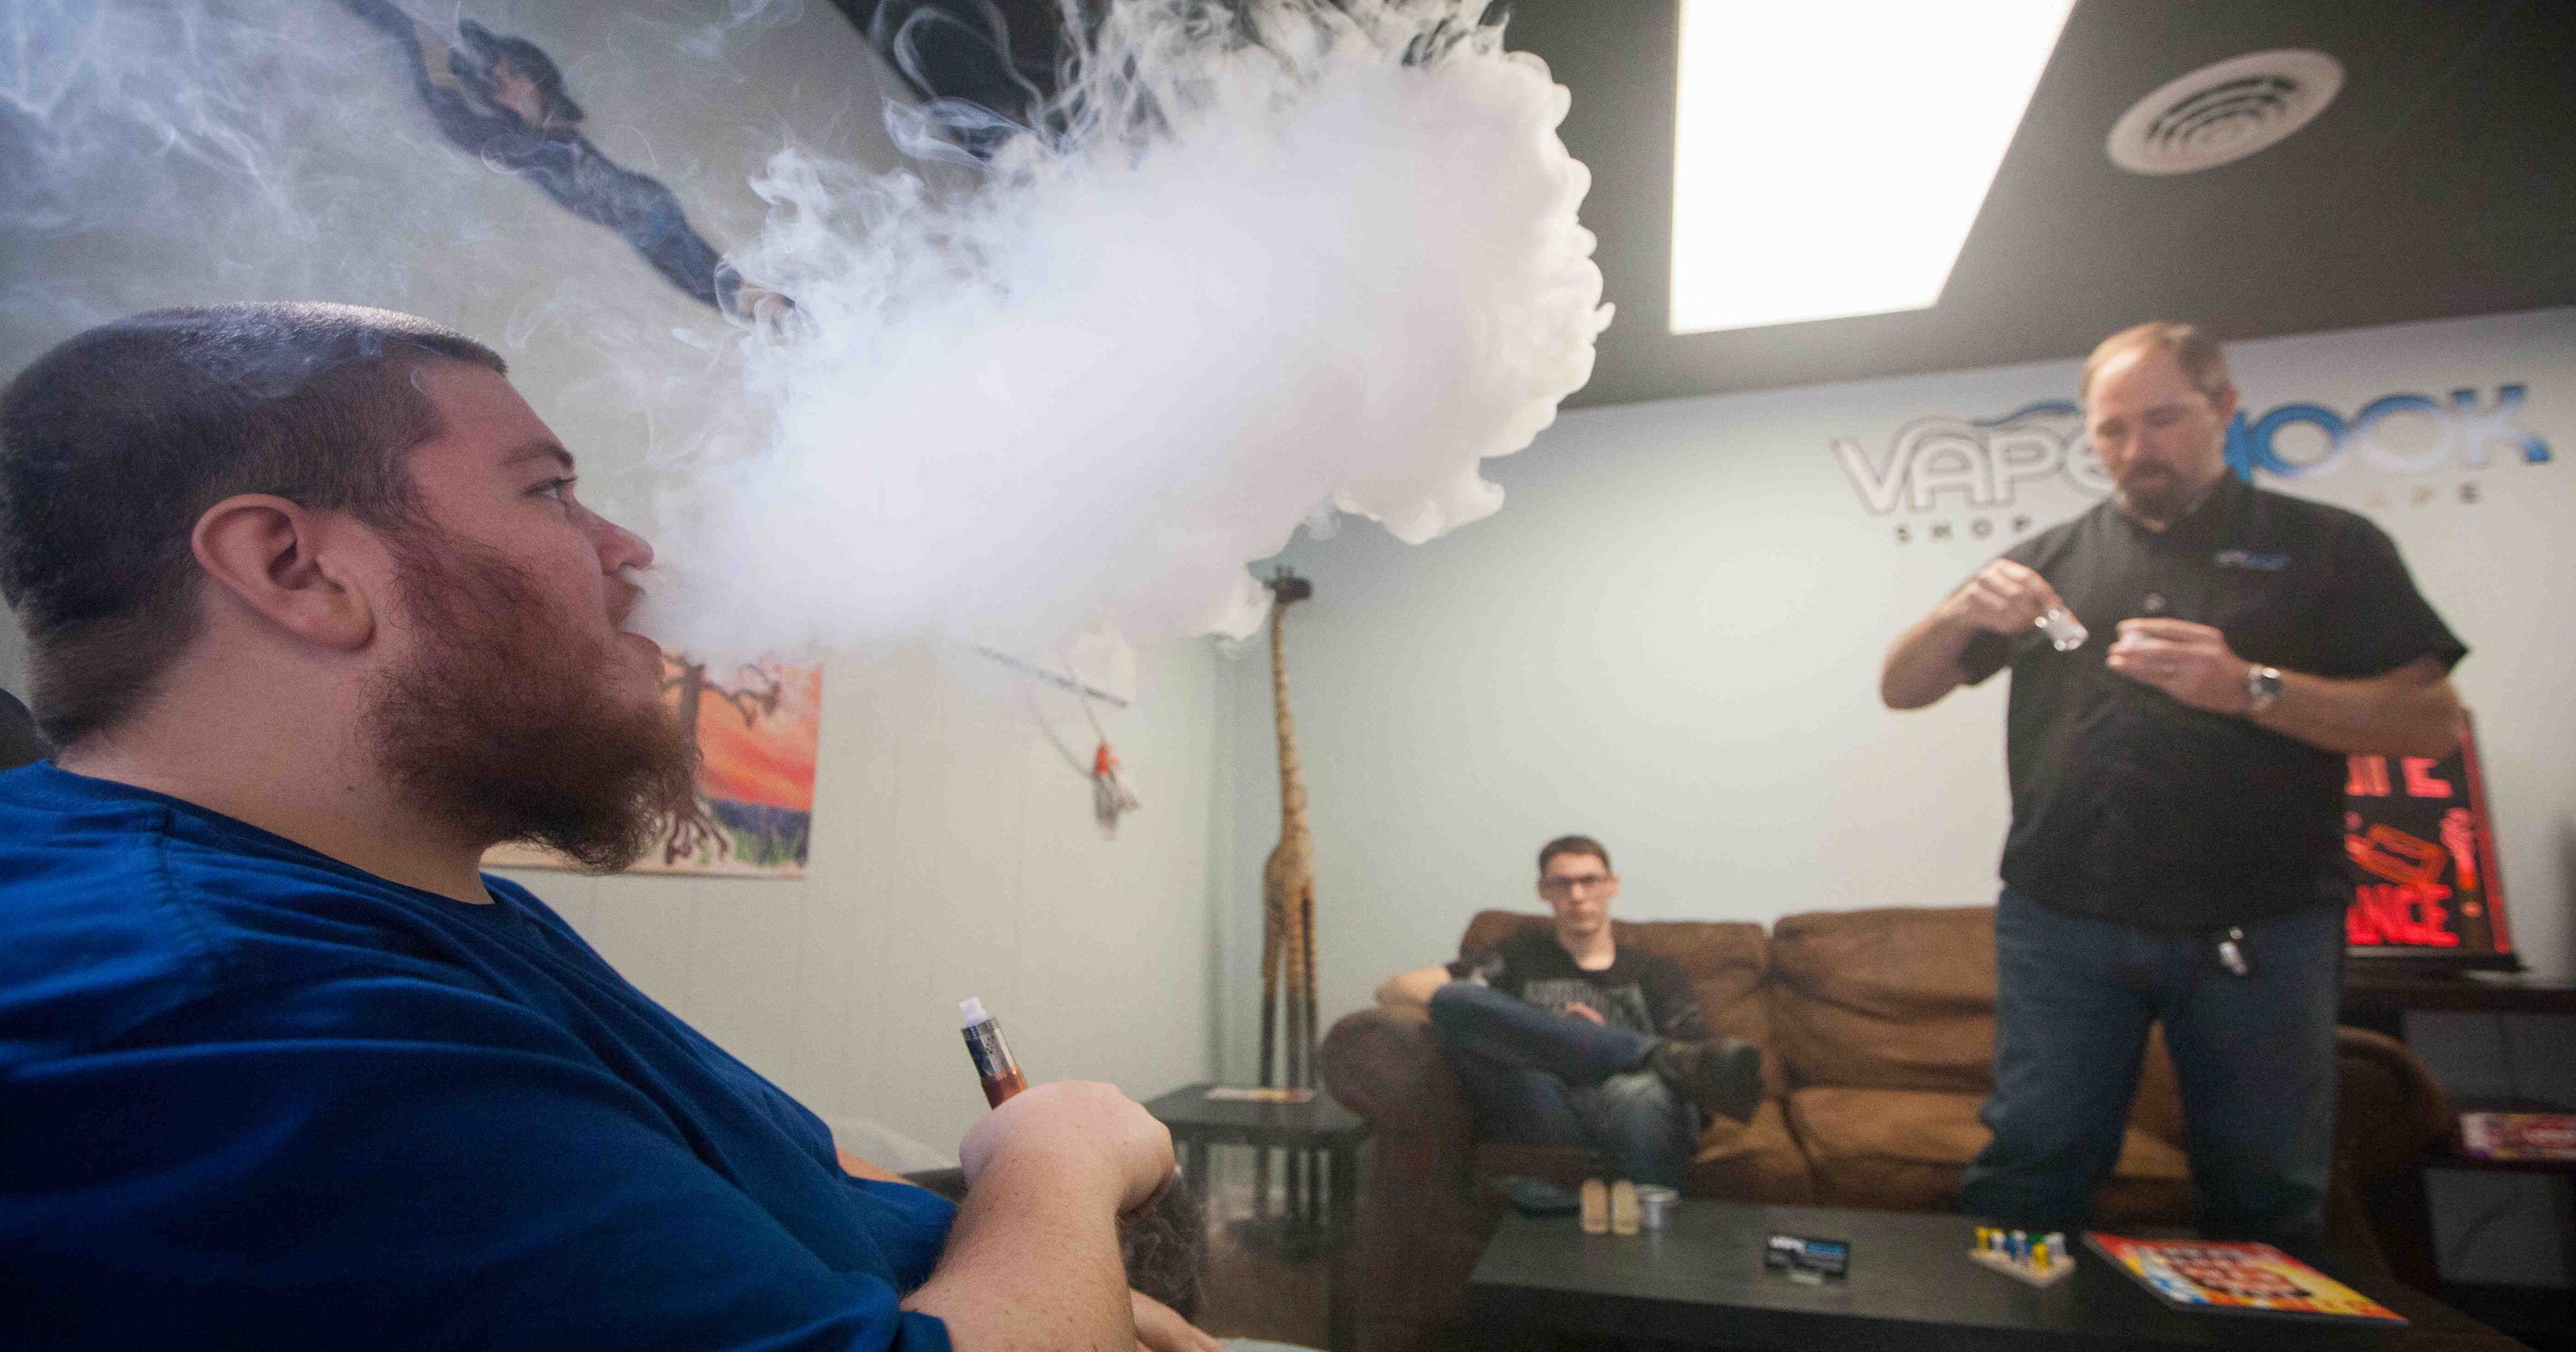 Vape shop owners, customers fight indoor ban on e-cigs